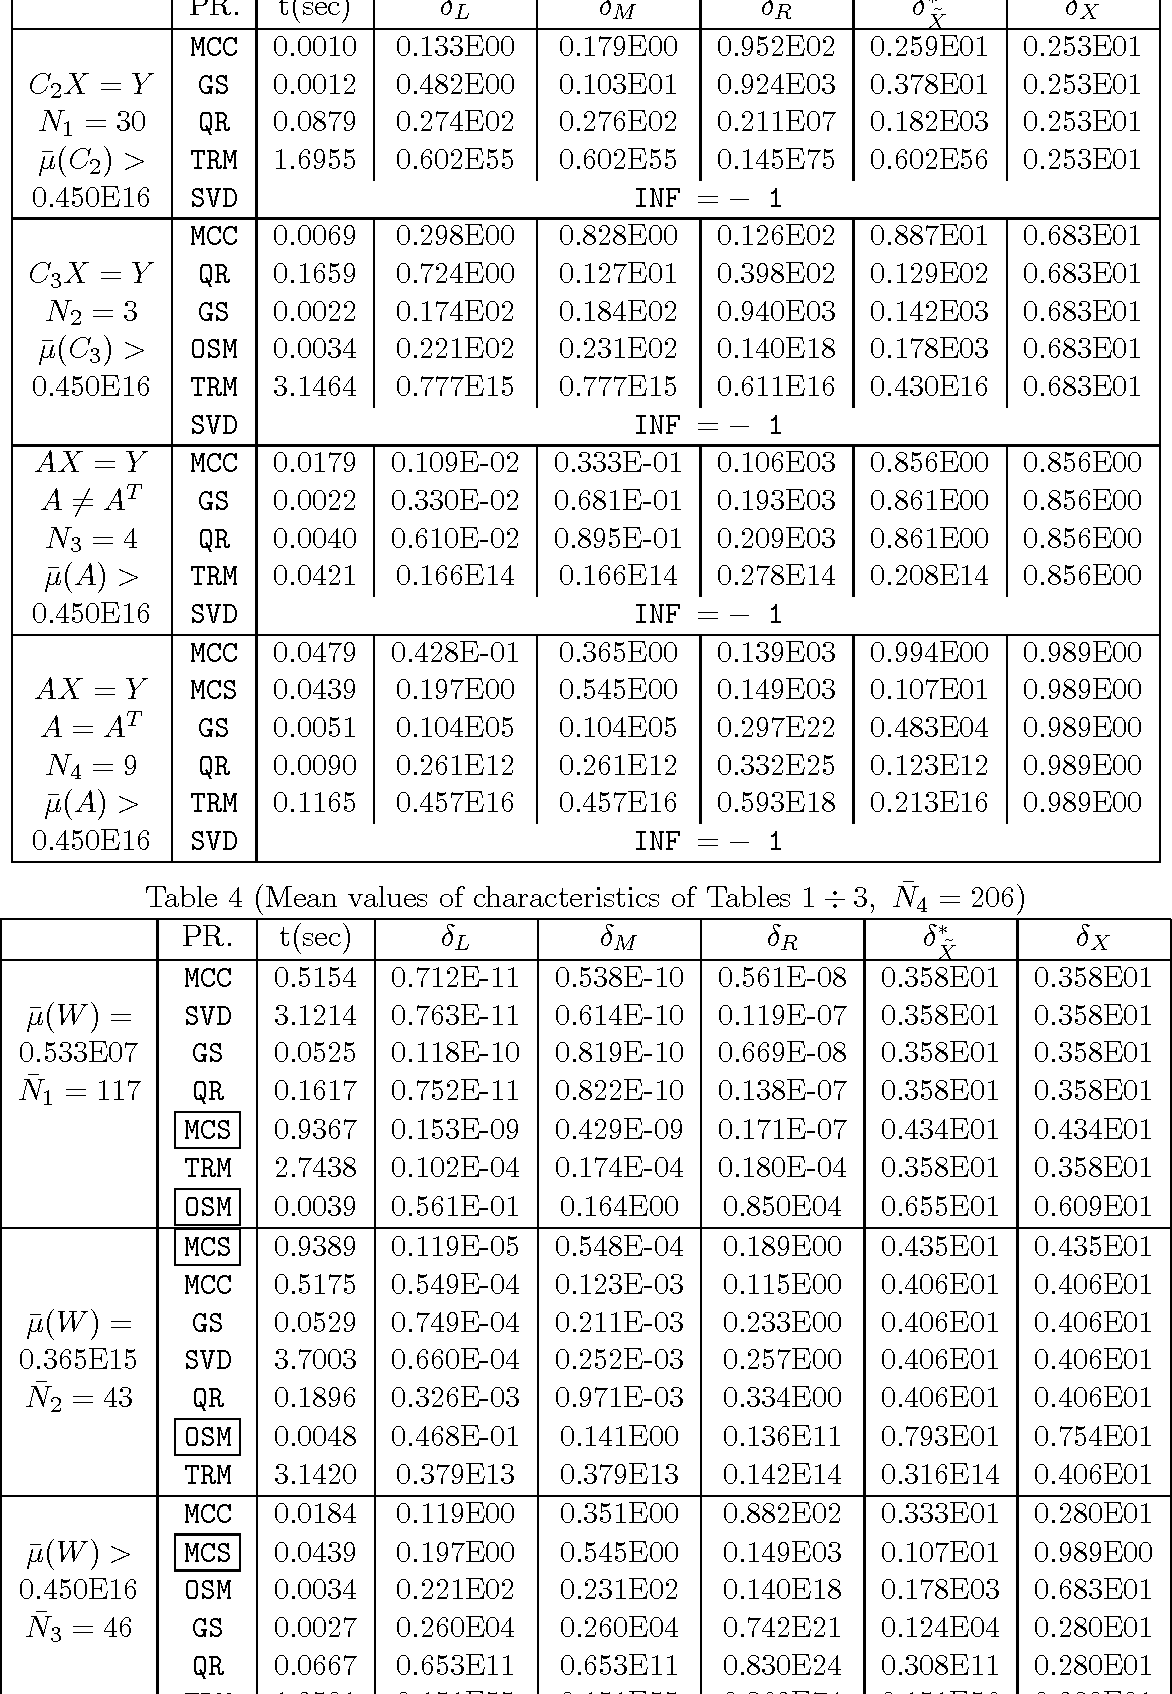 Table 4 (Mean values of characteristics of Tables 1÷ 3, N̄4 = 206)